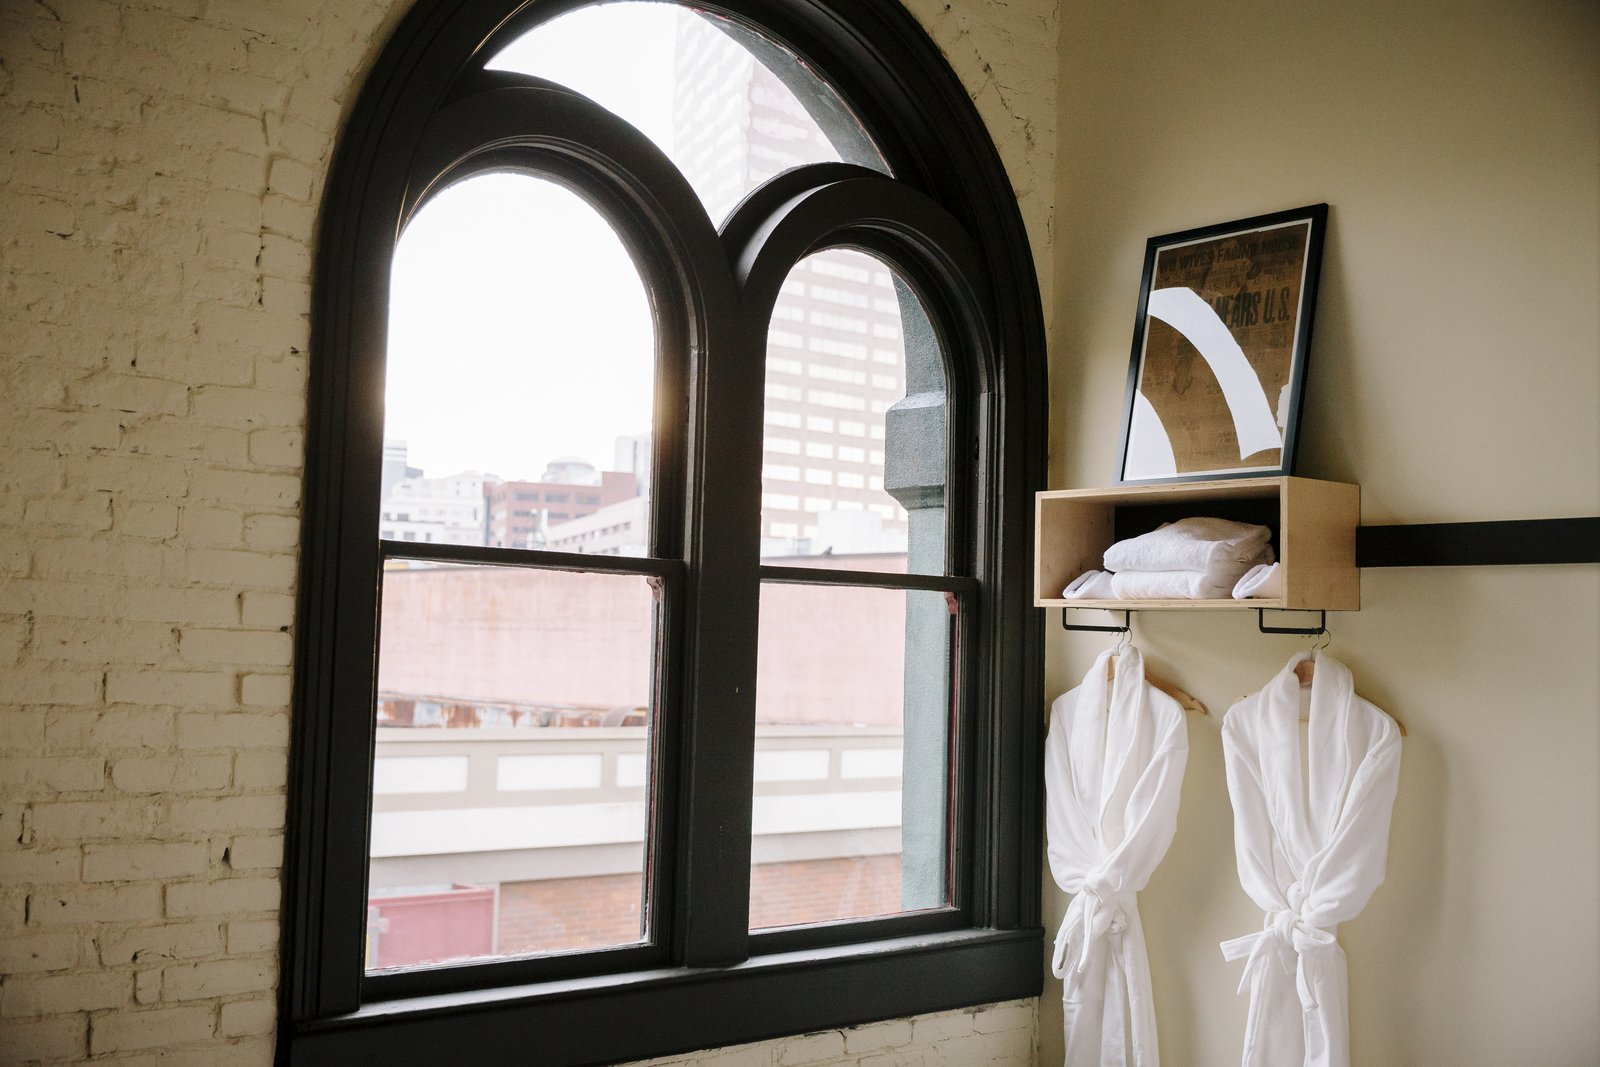 Bedroom, Storage, and Shelves The orginal dark wood window frames and exterior brick walls remain in tact. Simple, modern additions provide amenities in the guest rooms.  Photo 9 of 11 in A Chic Portland Hotel Offers Lodging As Affordable as $35 a Night